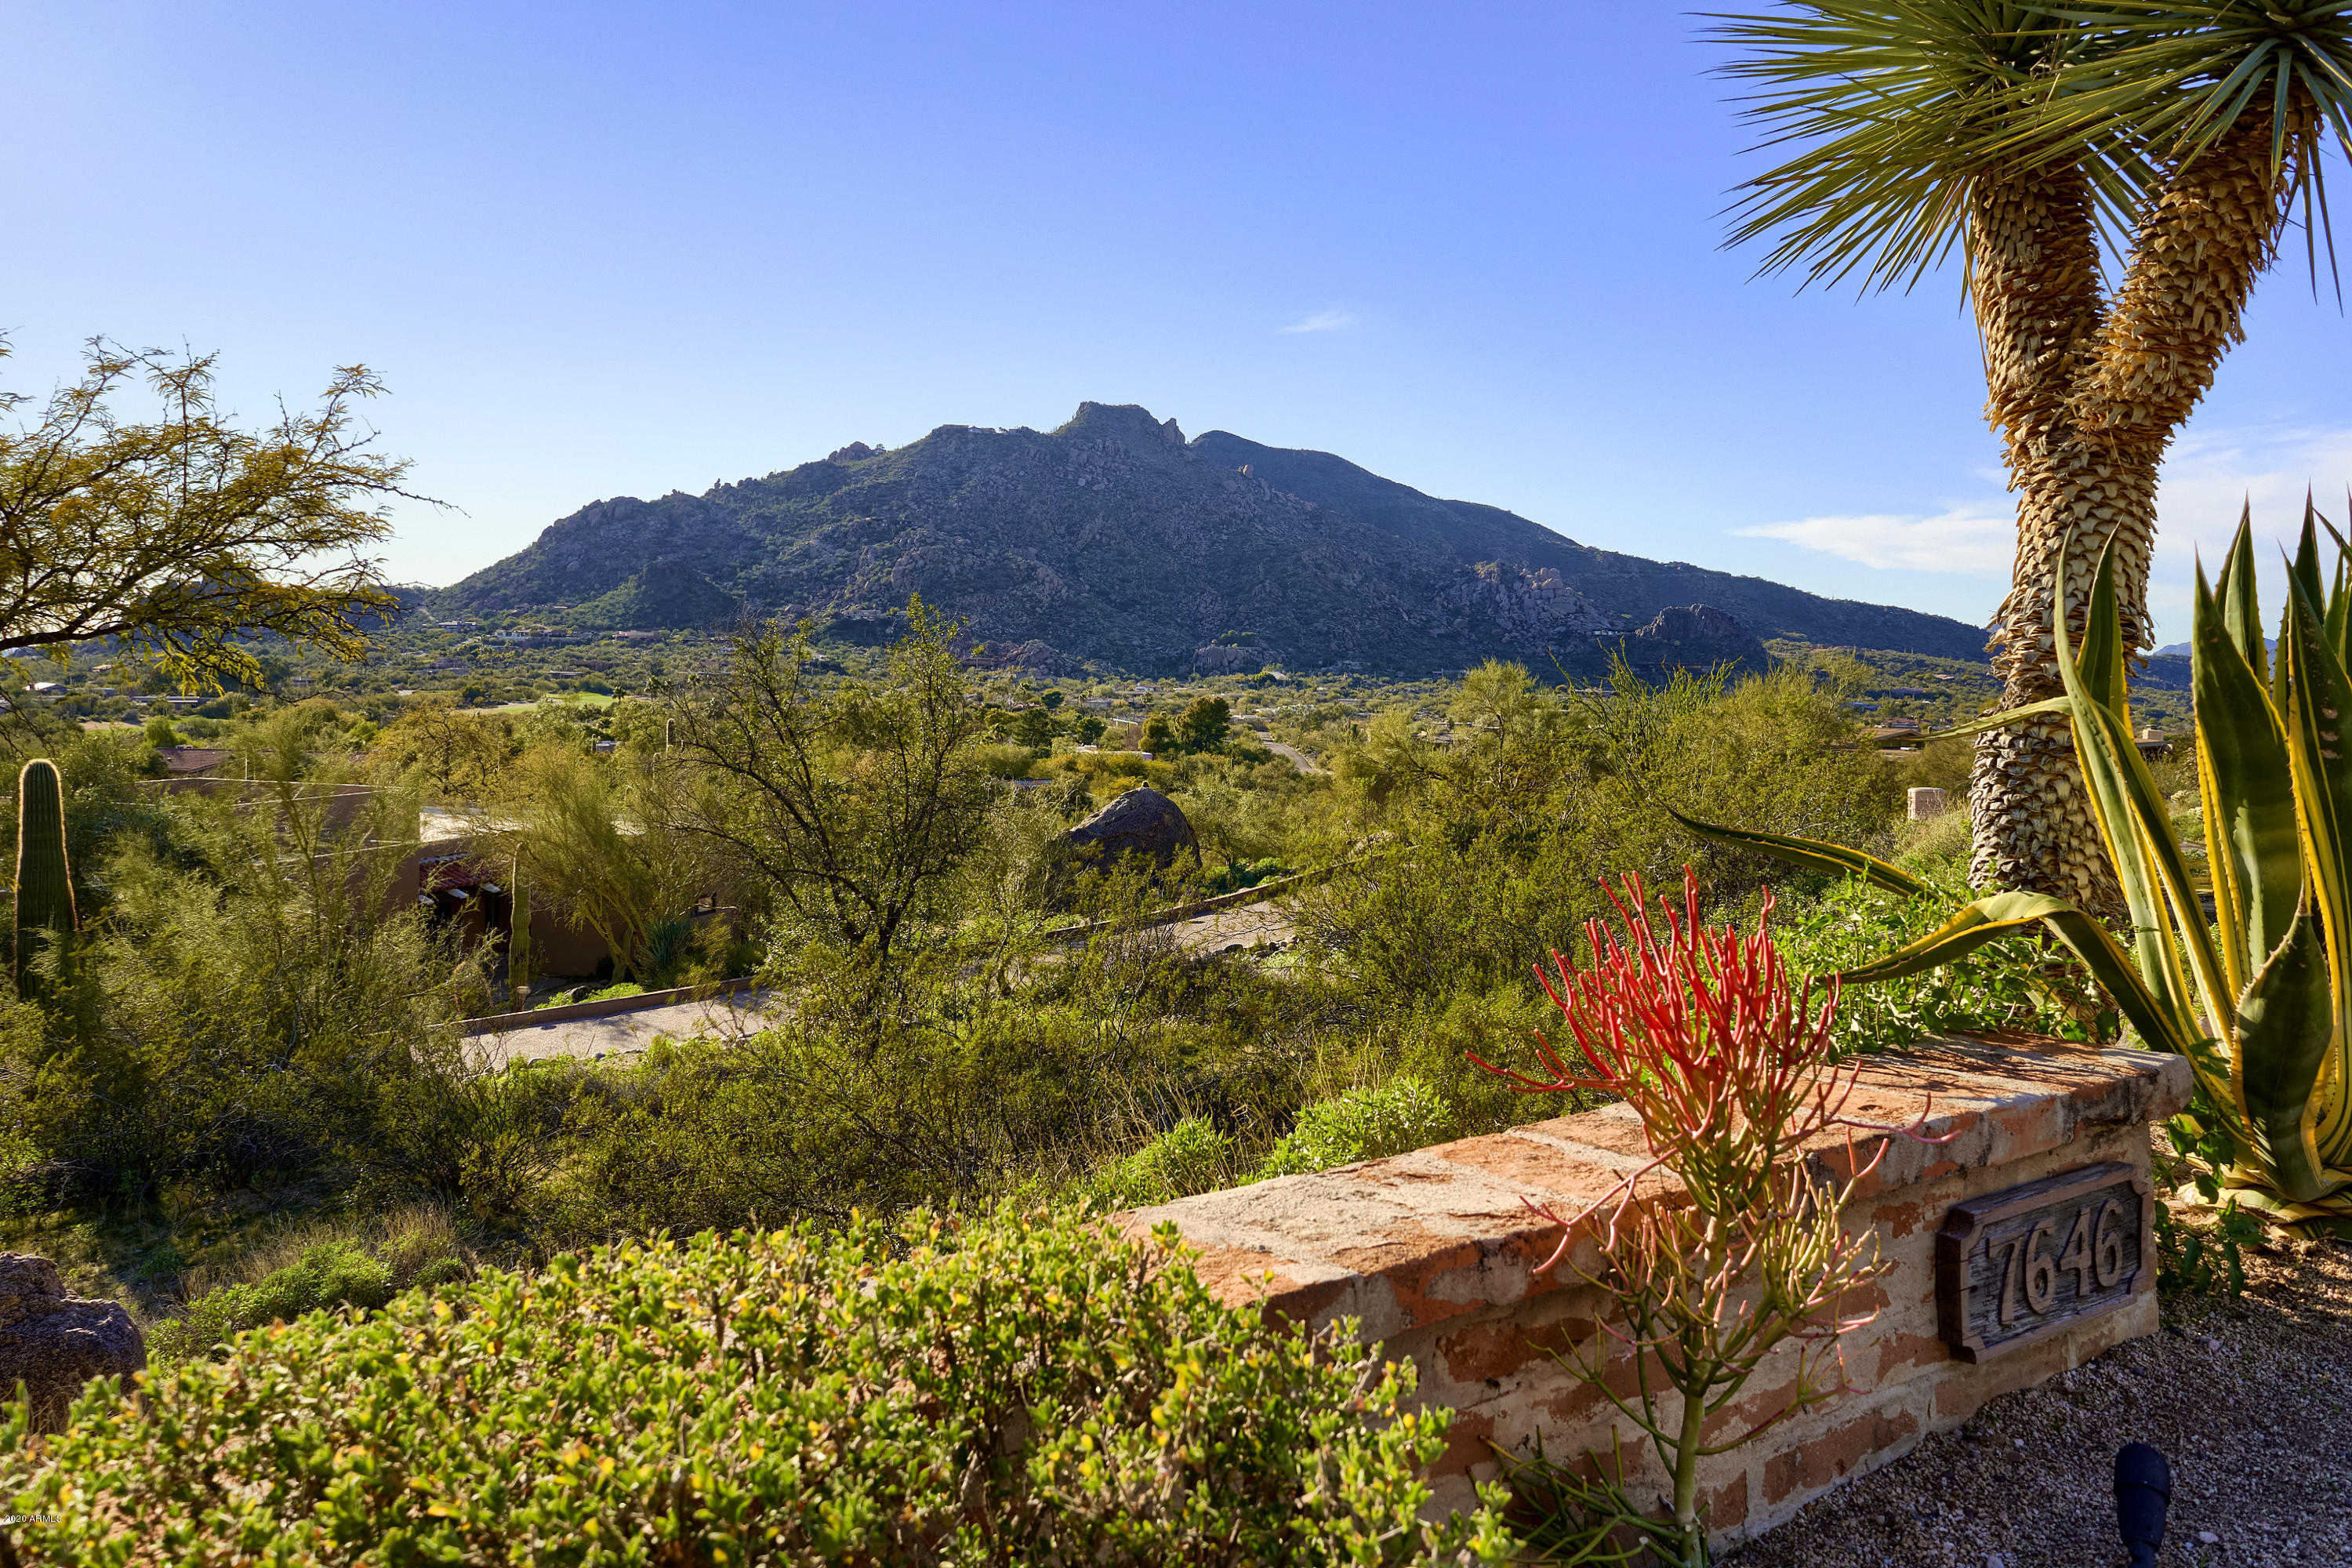 $1,900,000 - 5Br/8Ba - Home for Sale in 1.9 Acre Estate - No Hoa!, Carefree